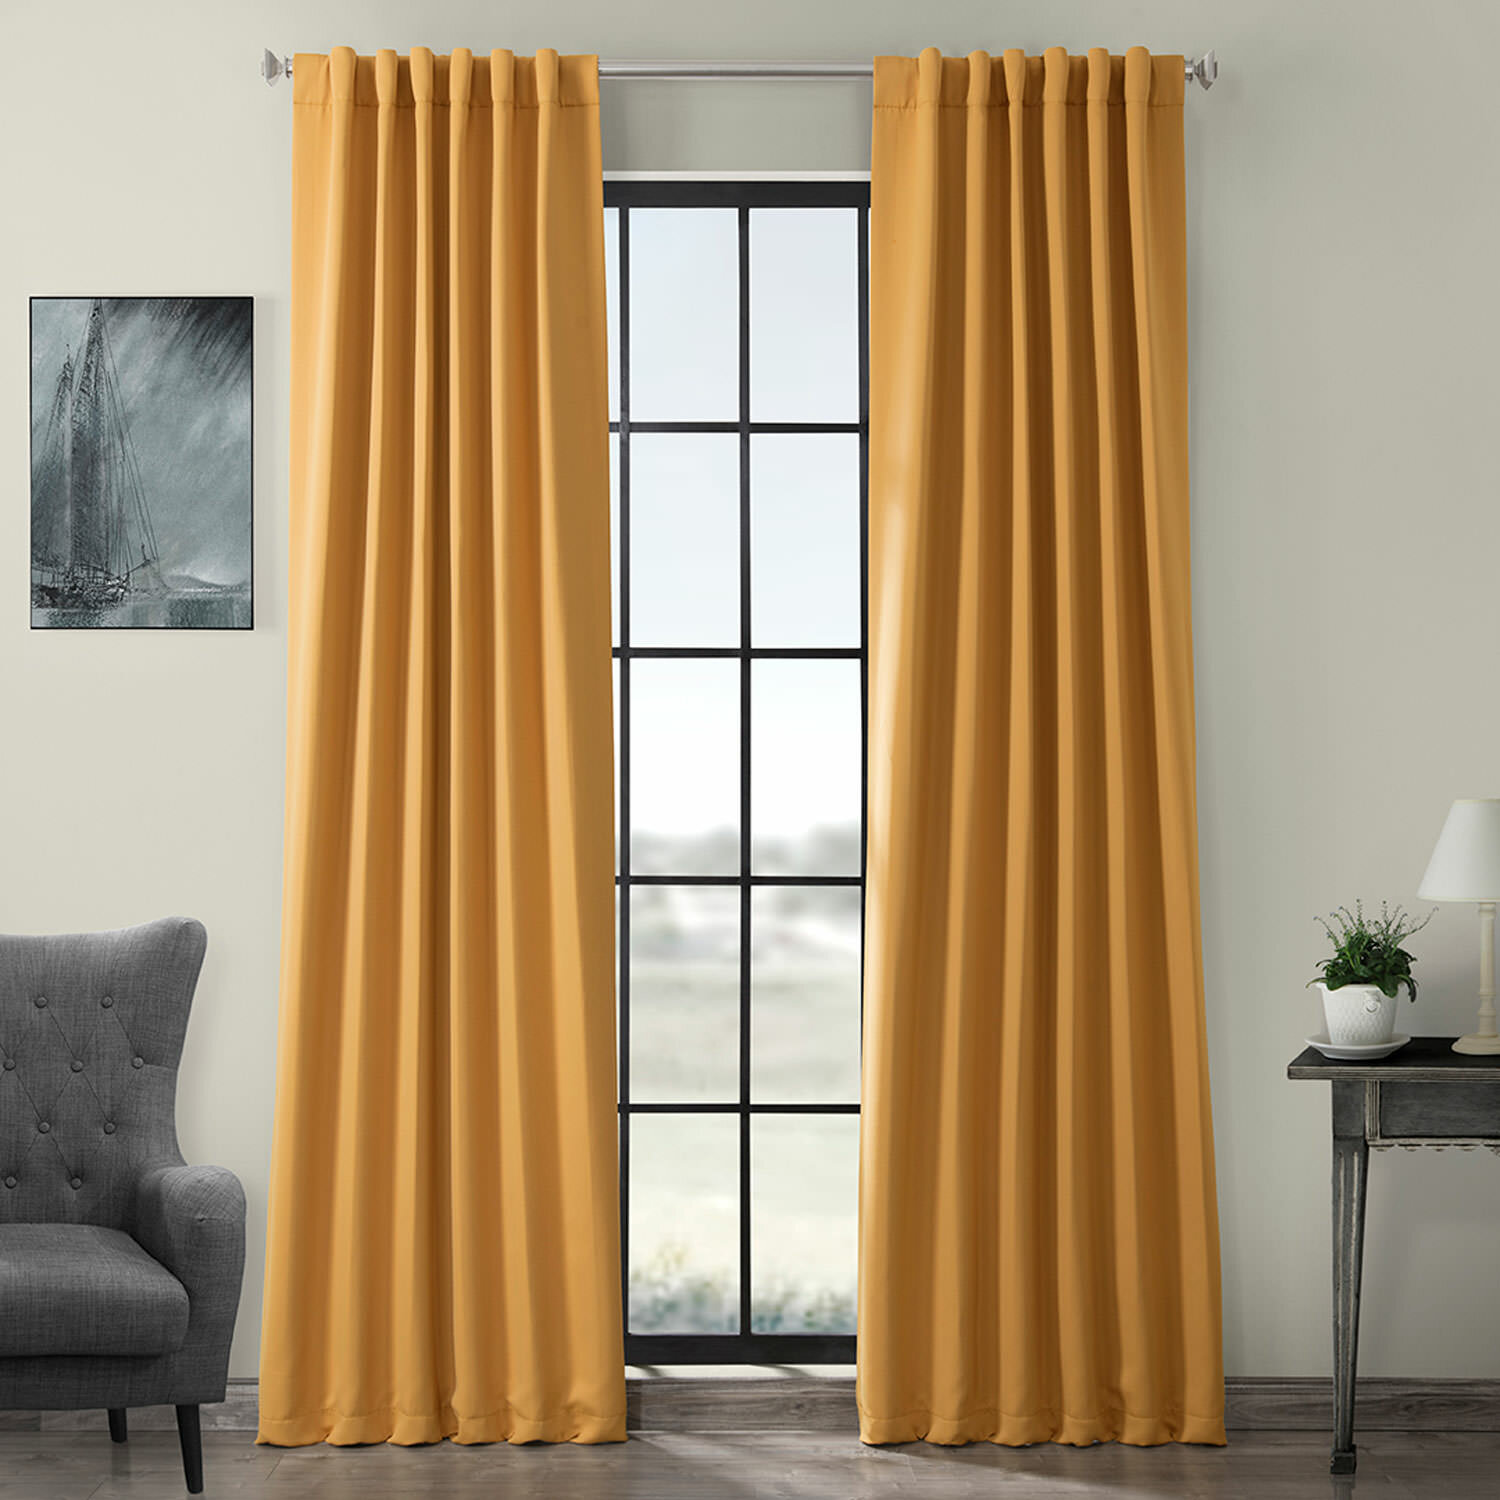 Darby Home Co Destinie Solid Color Room Darkening Rod Pocket Curtain Panels Reviews Wayfair